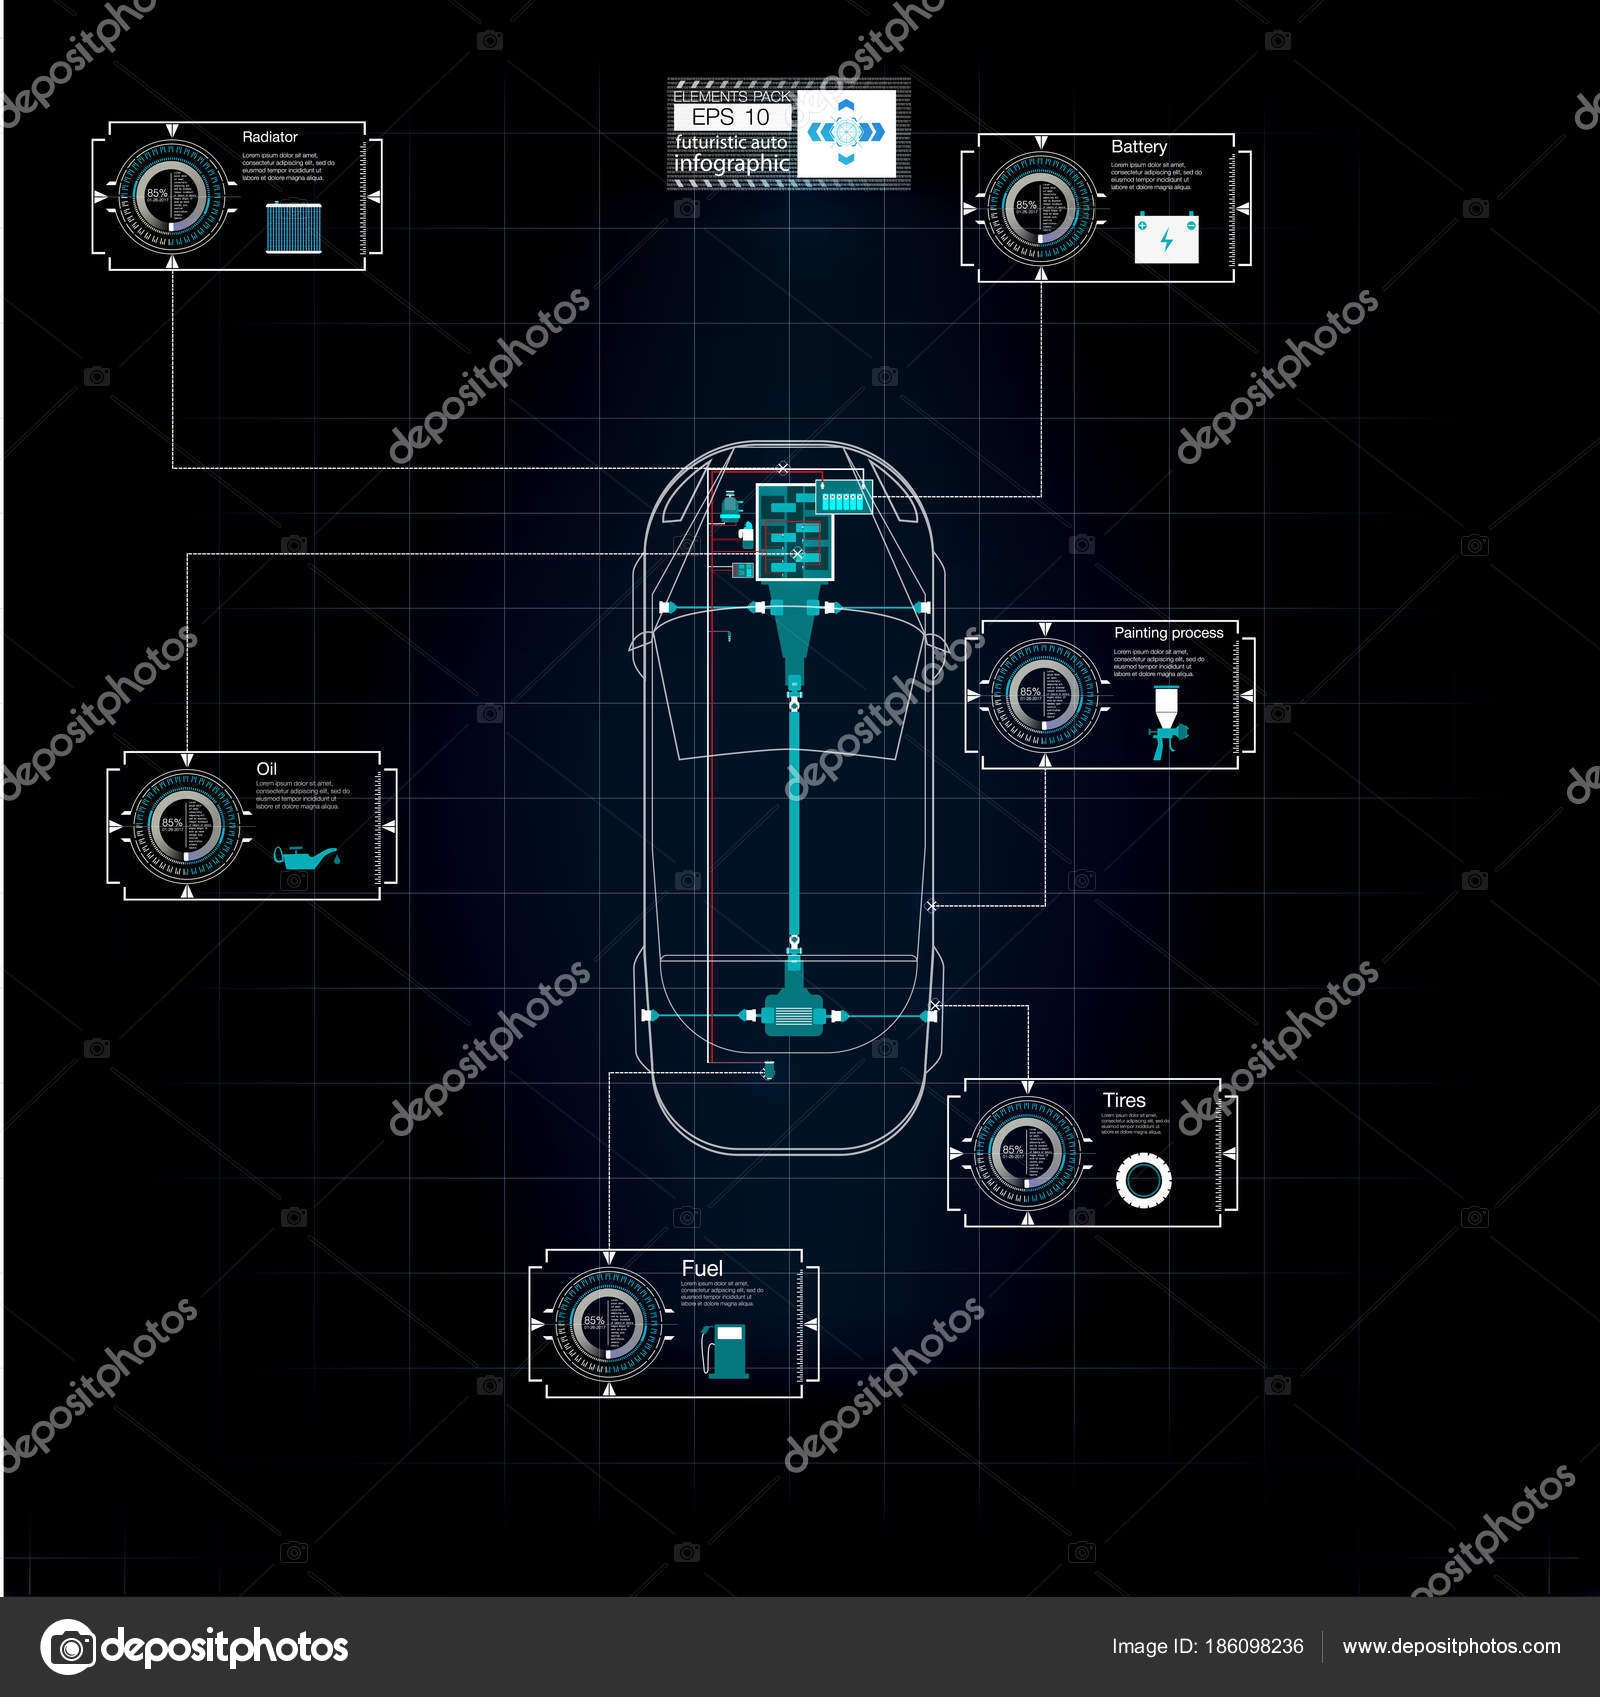 Car Diagrams User Interface Design Car Diagrams User Interface Design Pinoliver Krüger Interface Ux Of Car Diagrams User Interface Design